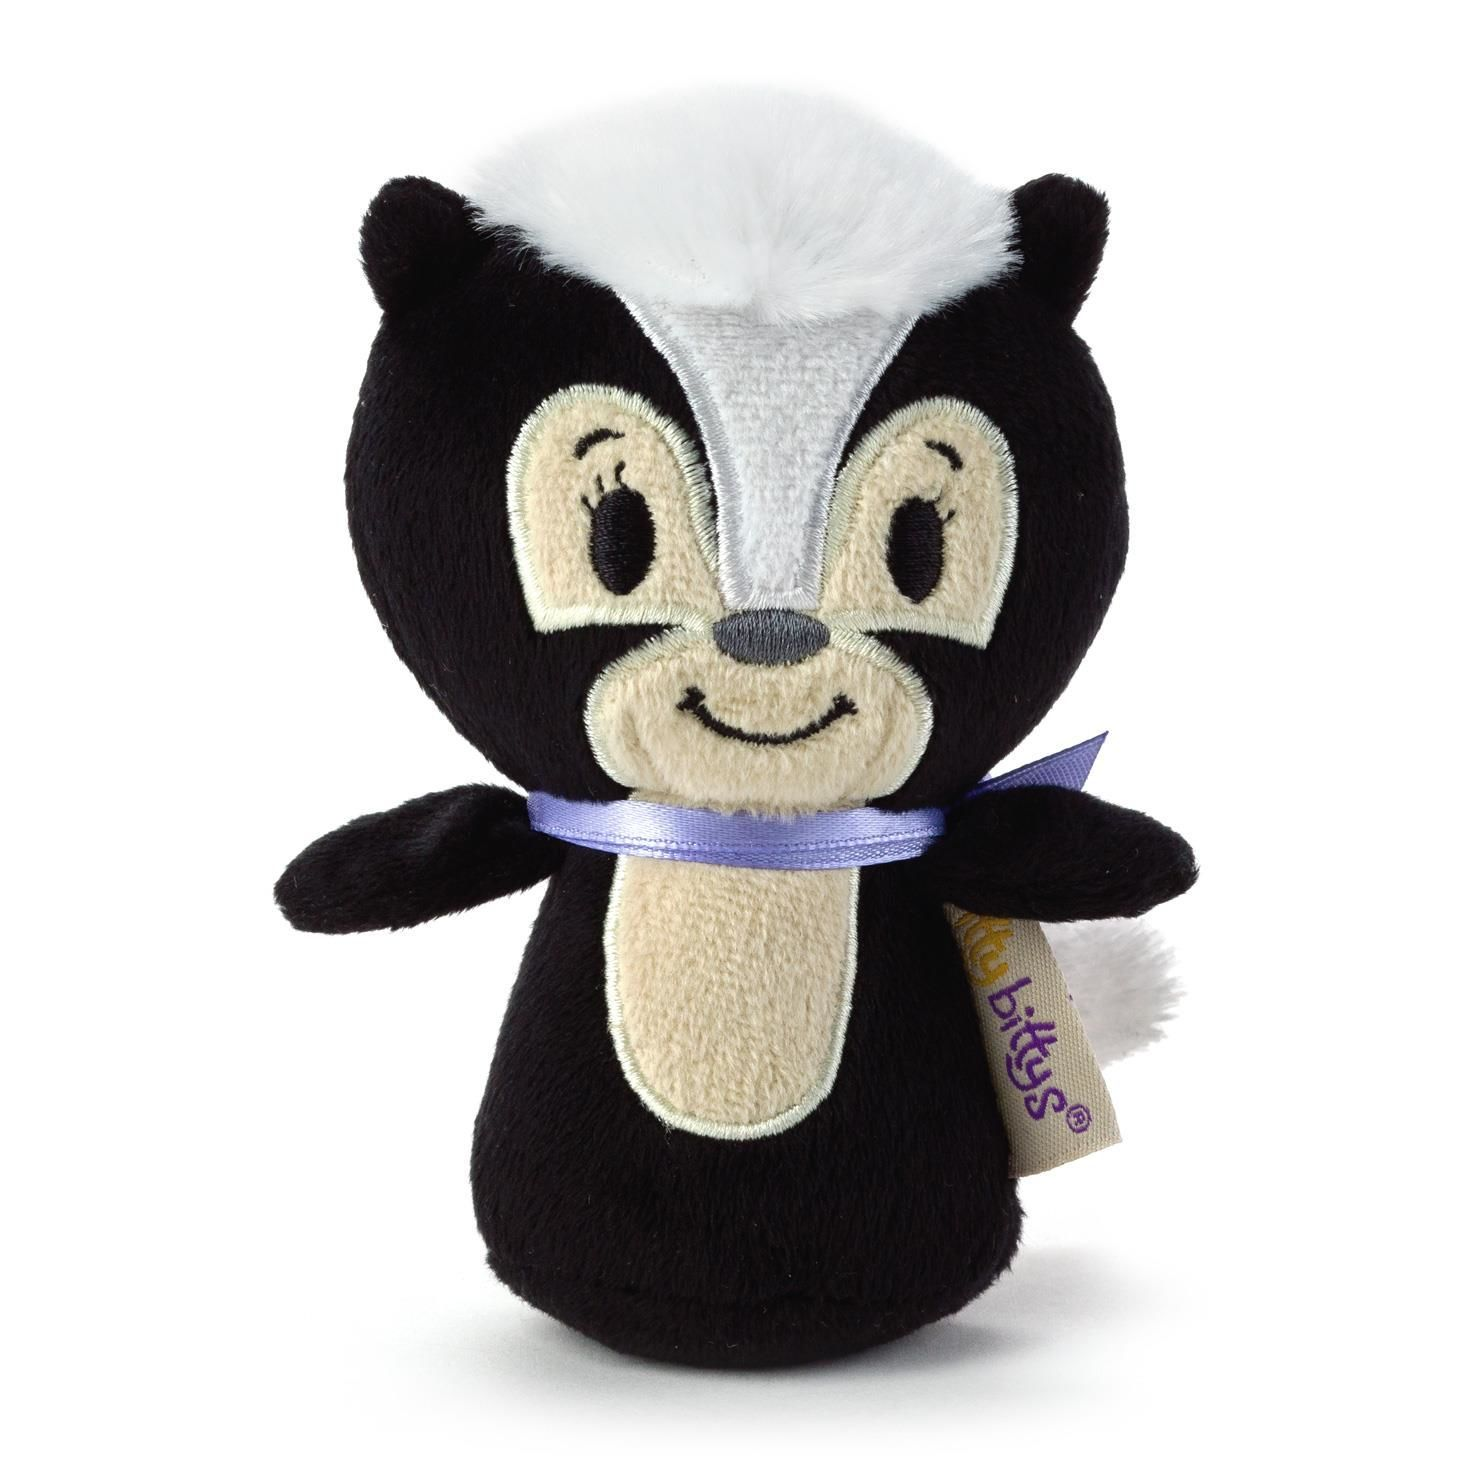 Ittybittys flower 3 3 3 easter 2015 disney flower stuffed animal ittybittys flower 3 3 3 easter 2015 disney flower stuffed animal limited negle Image collections